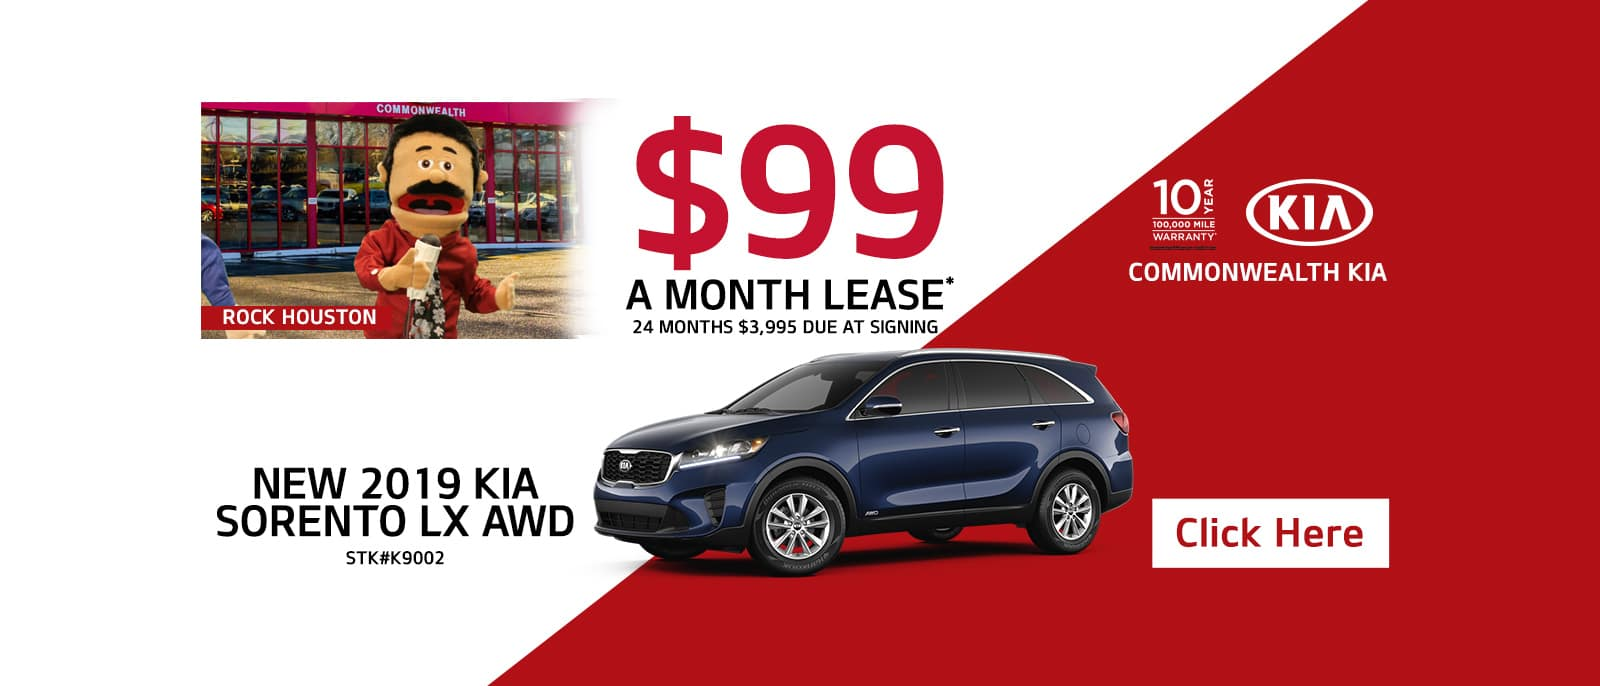 Eastern Shore Kia Kia Dealer Serving Boston Commonwealth Kia